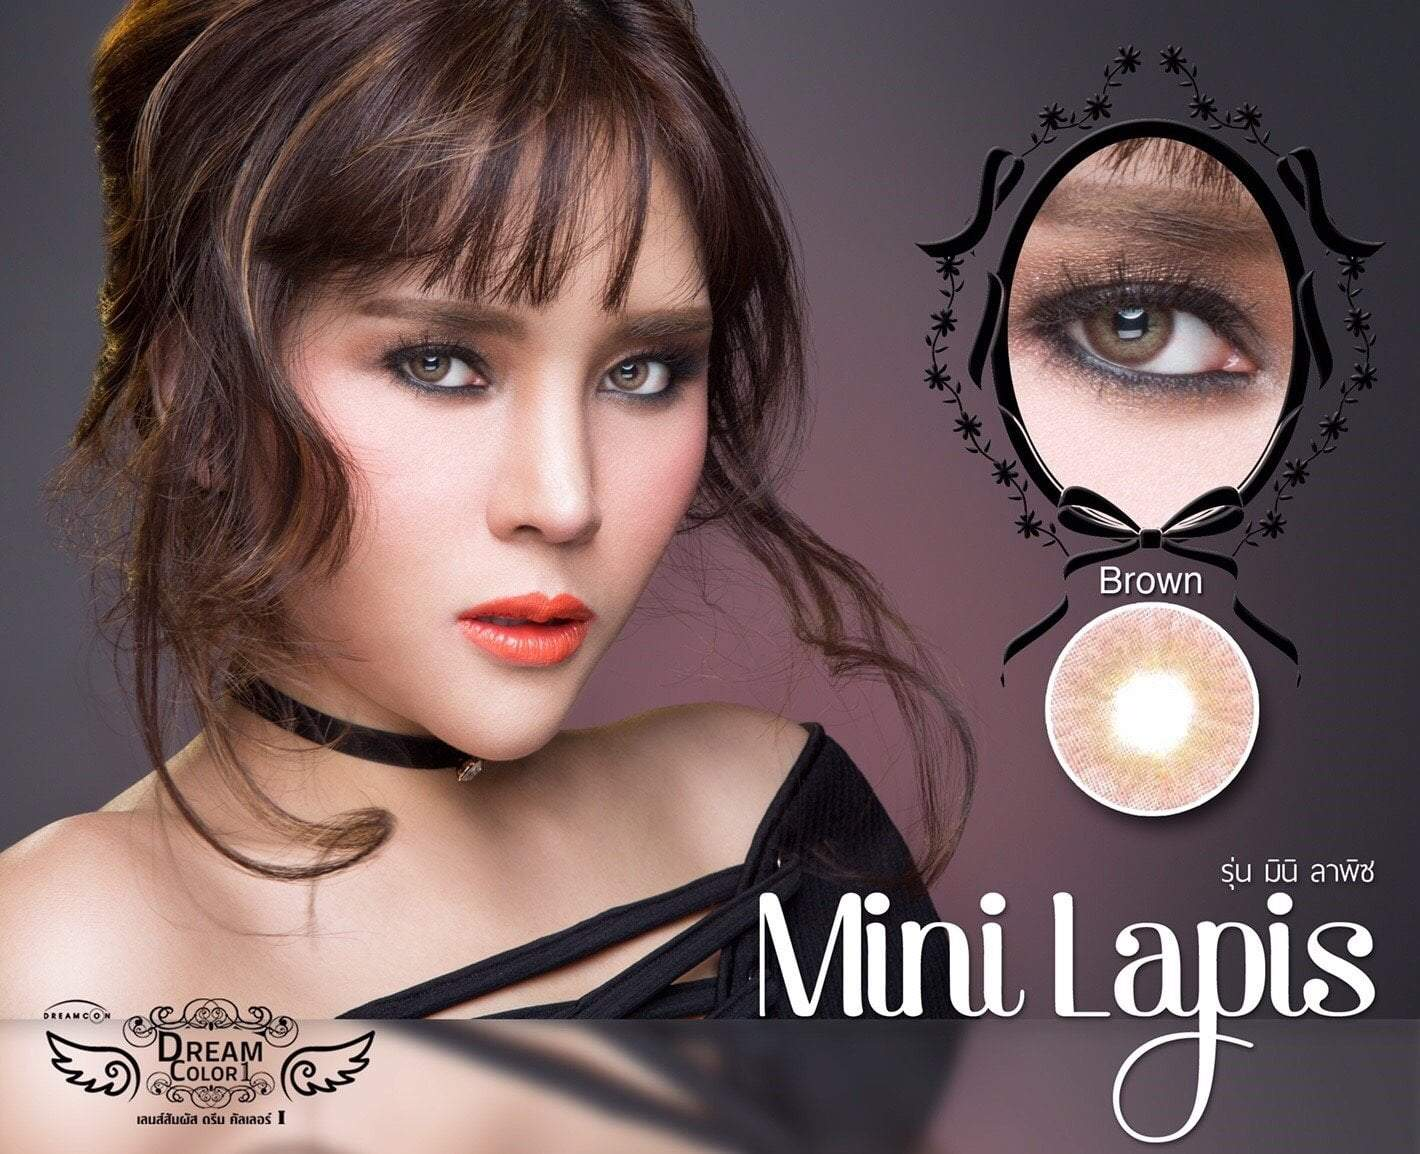 COLORED CONTACTS DREAM COLOR MINI LAPIS BROWN - Lens Beauty Queen